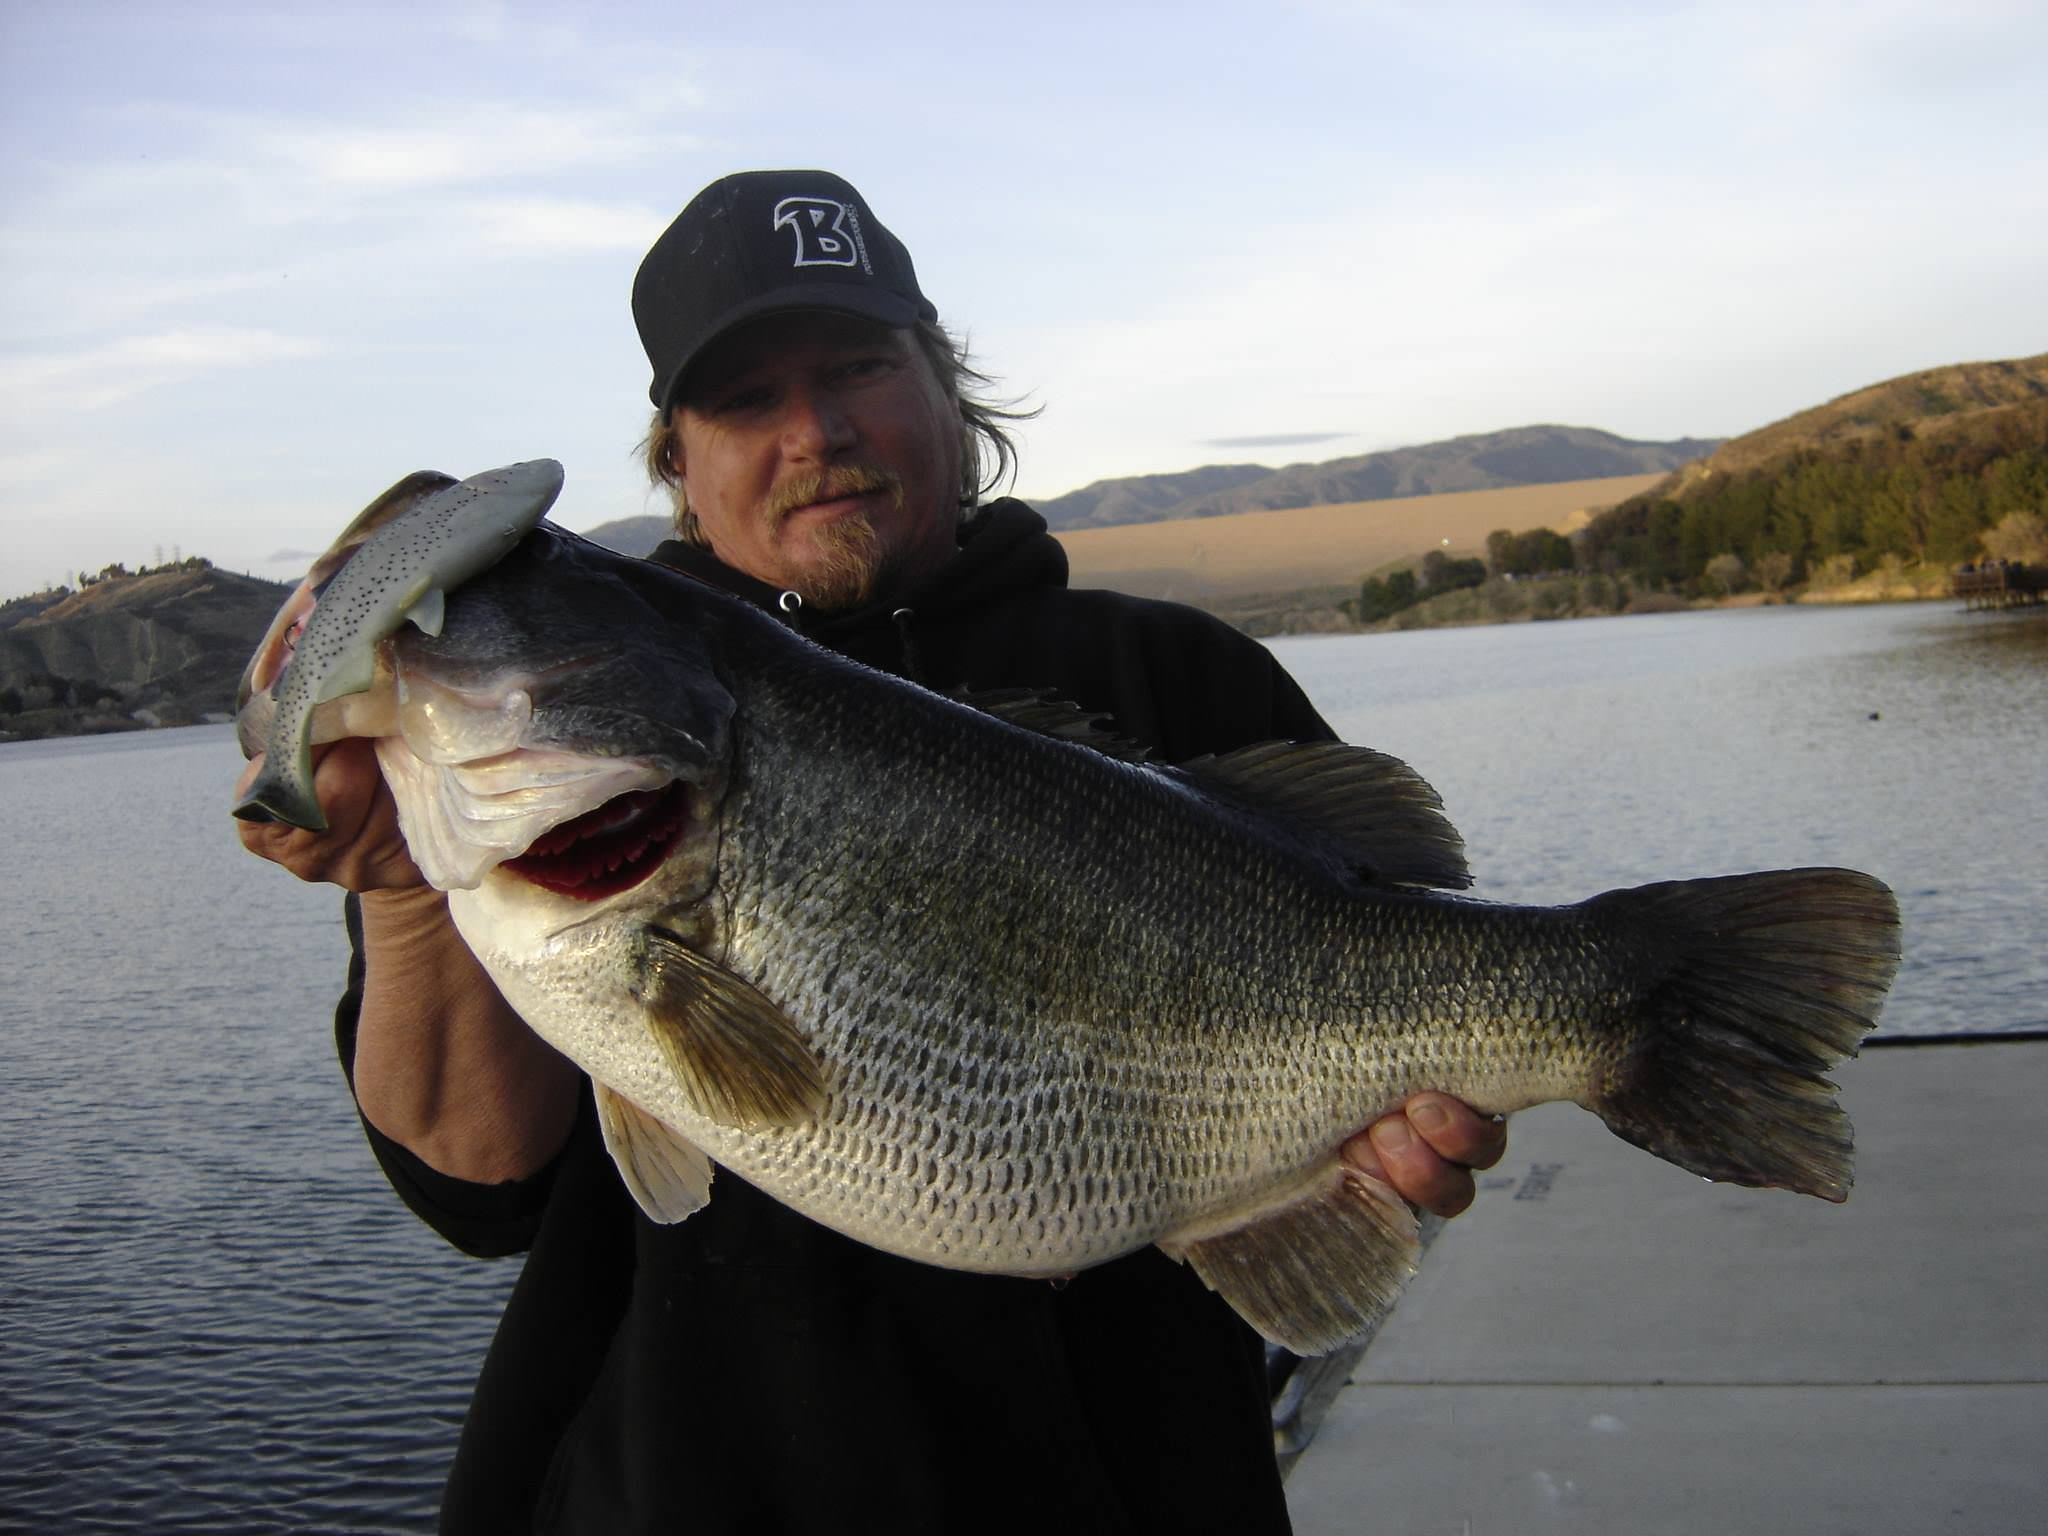 Big bass photos bassaholics blog for Best time for bass fishing